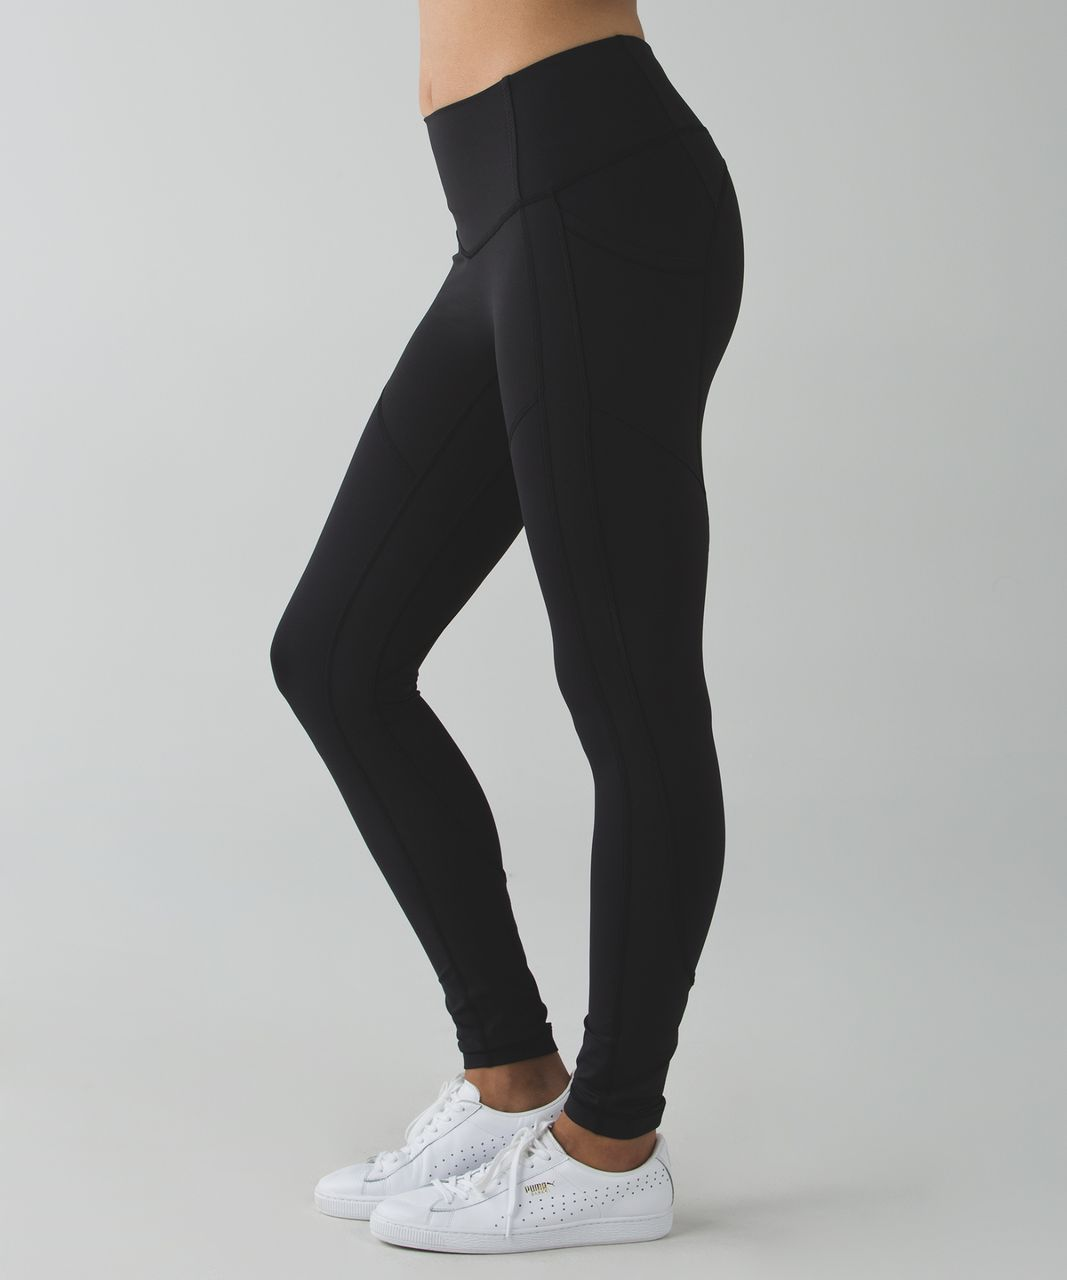 Lululemon All The Right Places Pant - Black